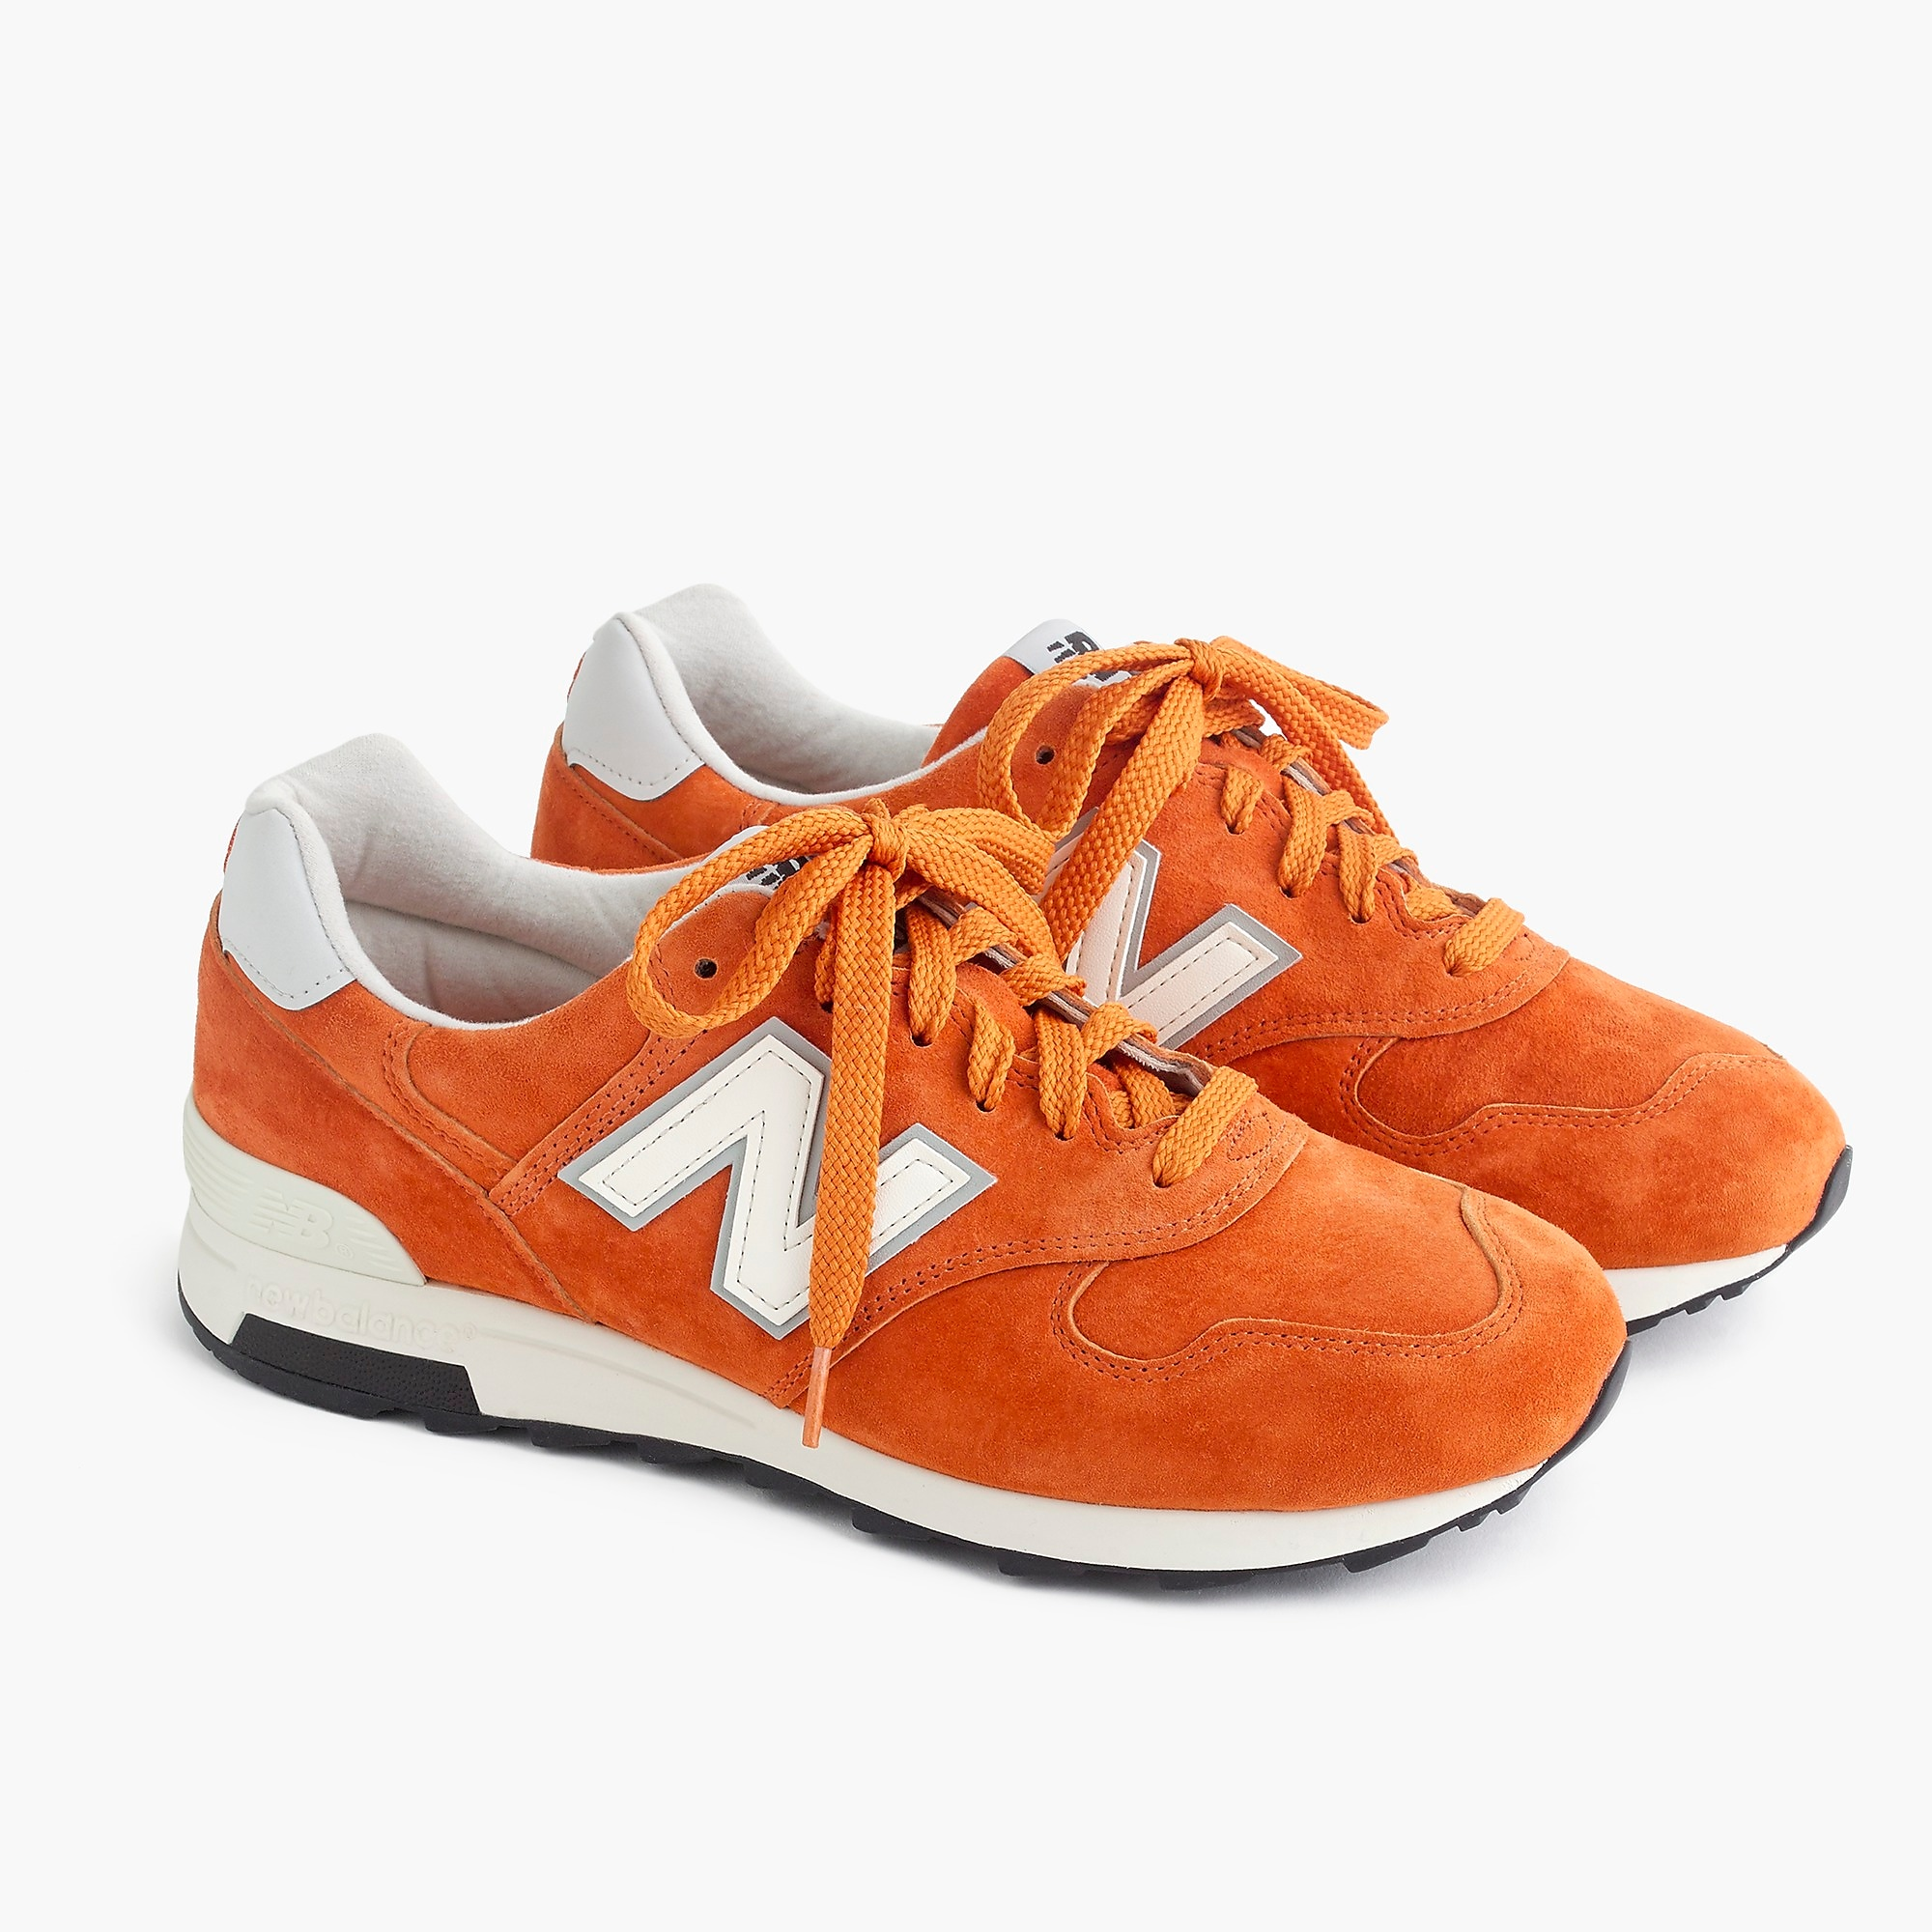 suitable for men/women where can i buy really comfortable J.Crew: New Balance® For J.Crew 1400 Sneakers In Orange